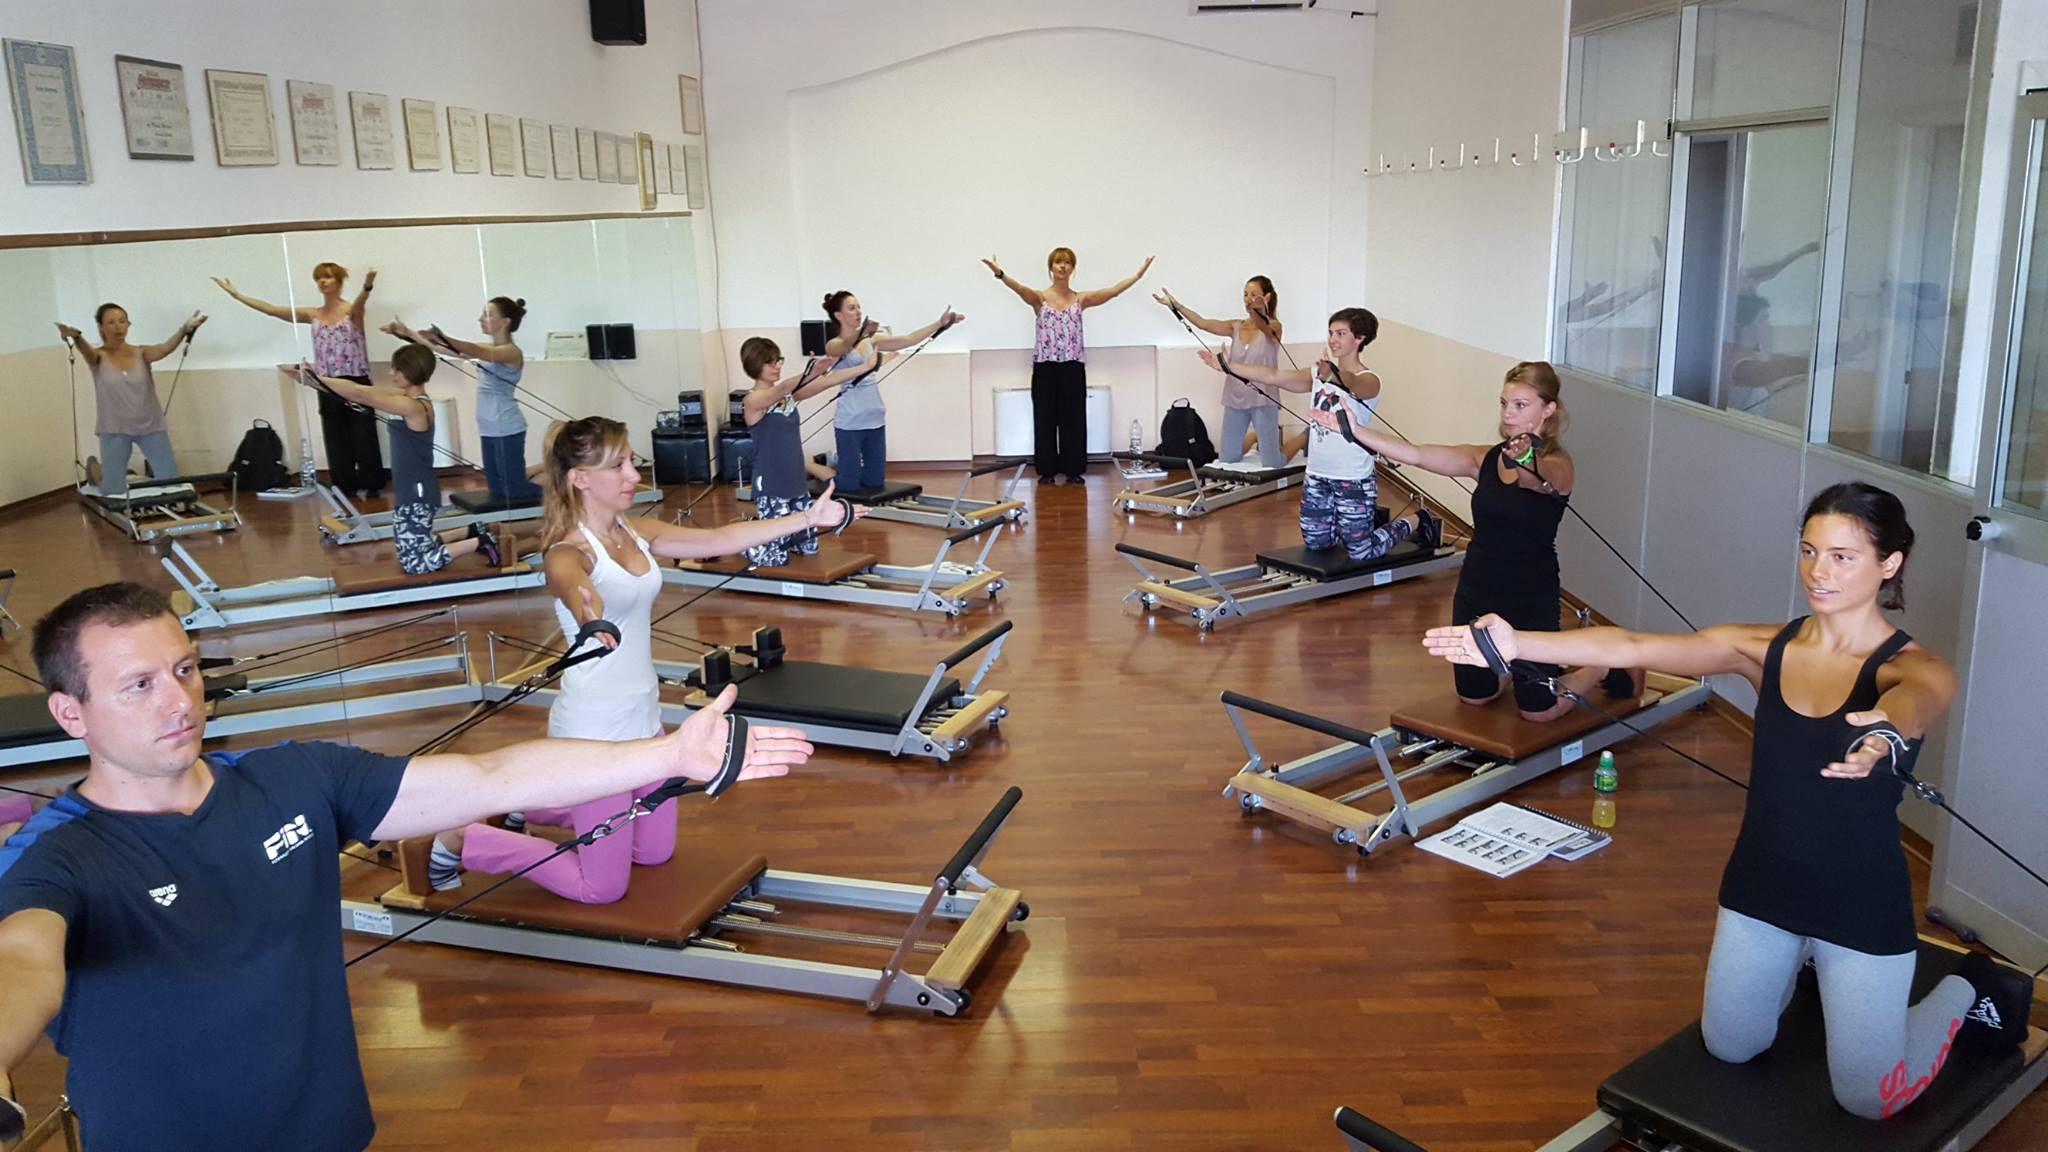 2 Studio Pilates Cassina De' Pecchi